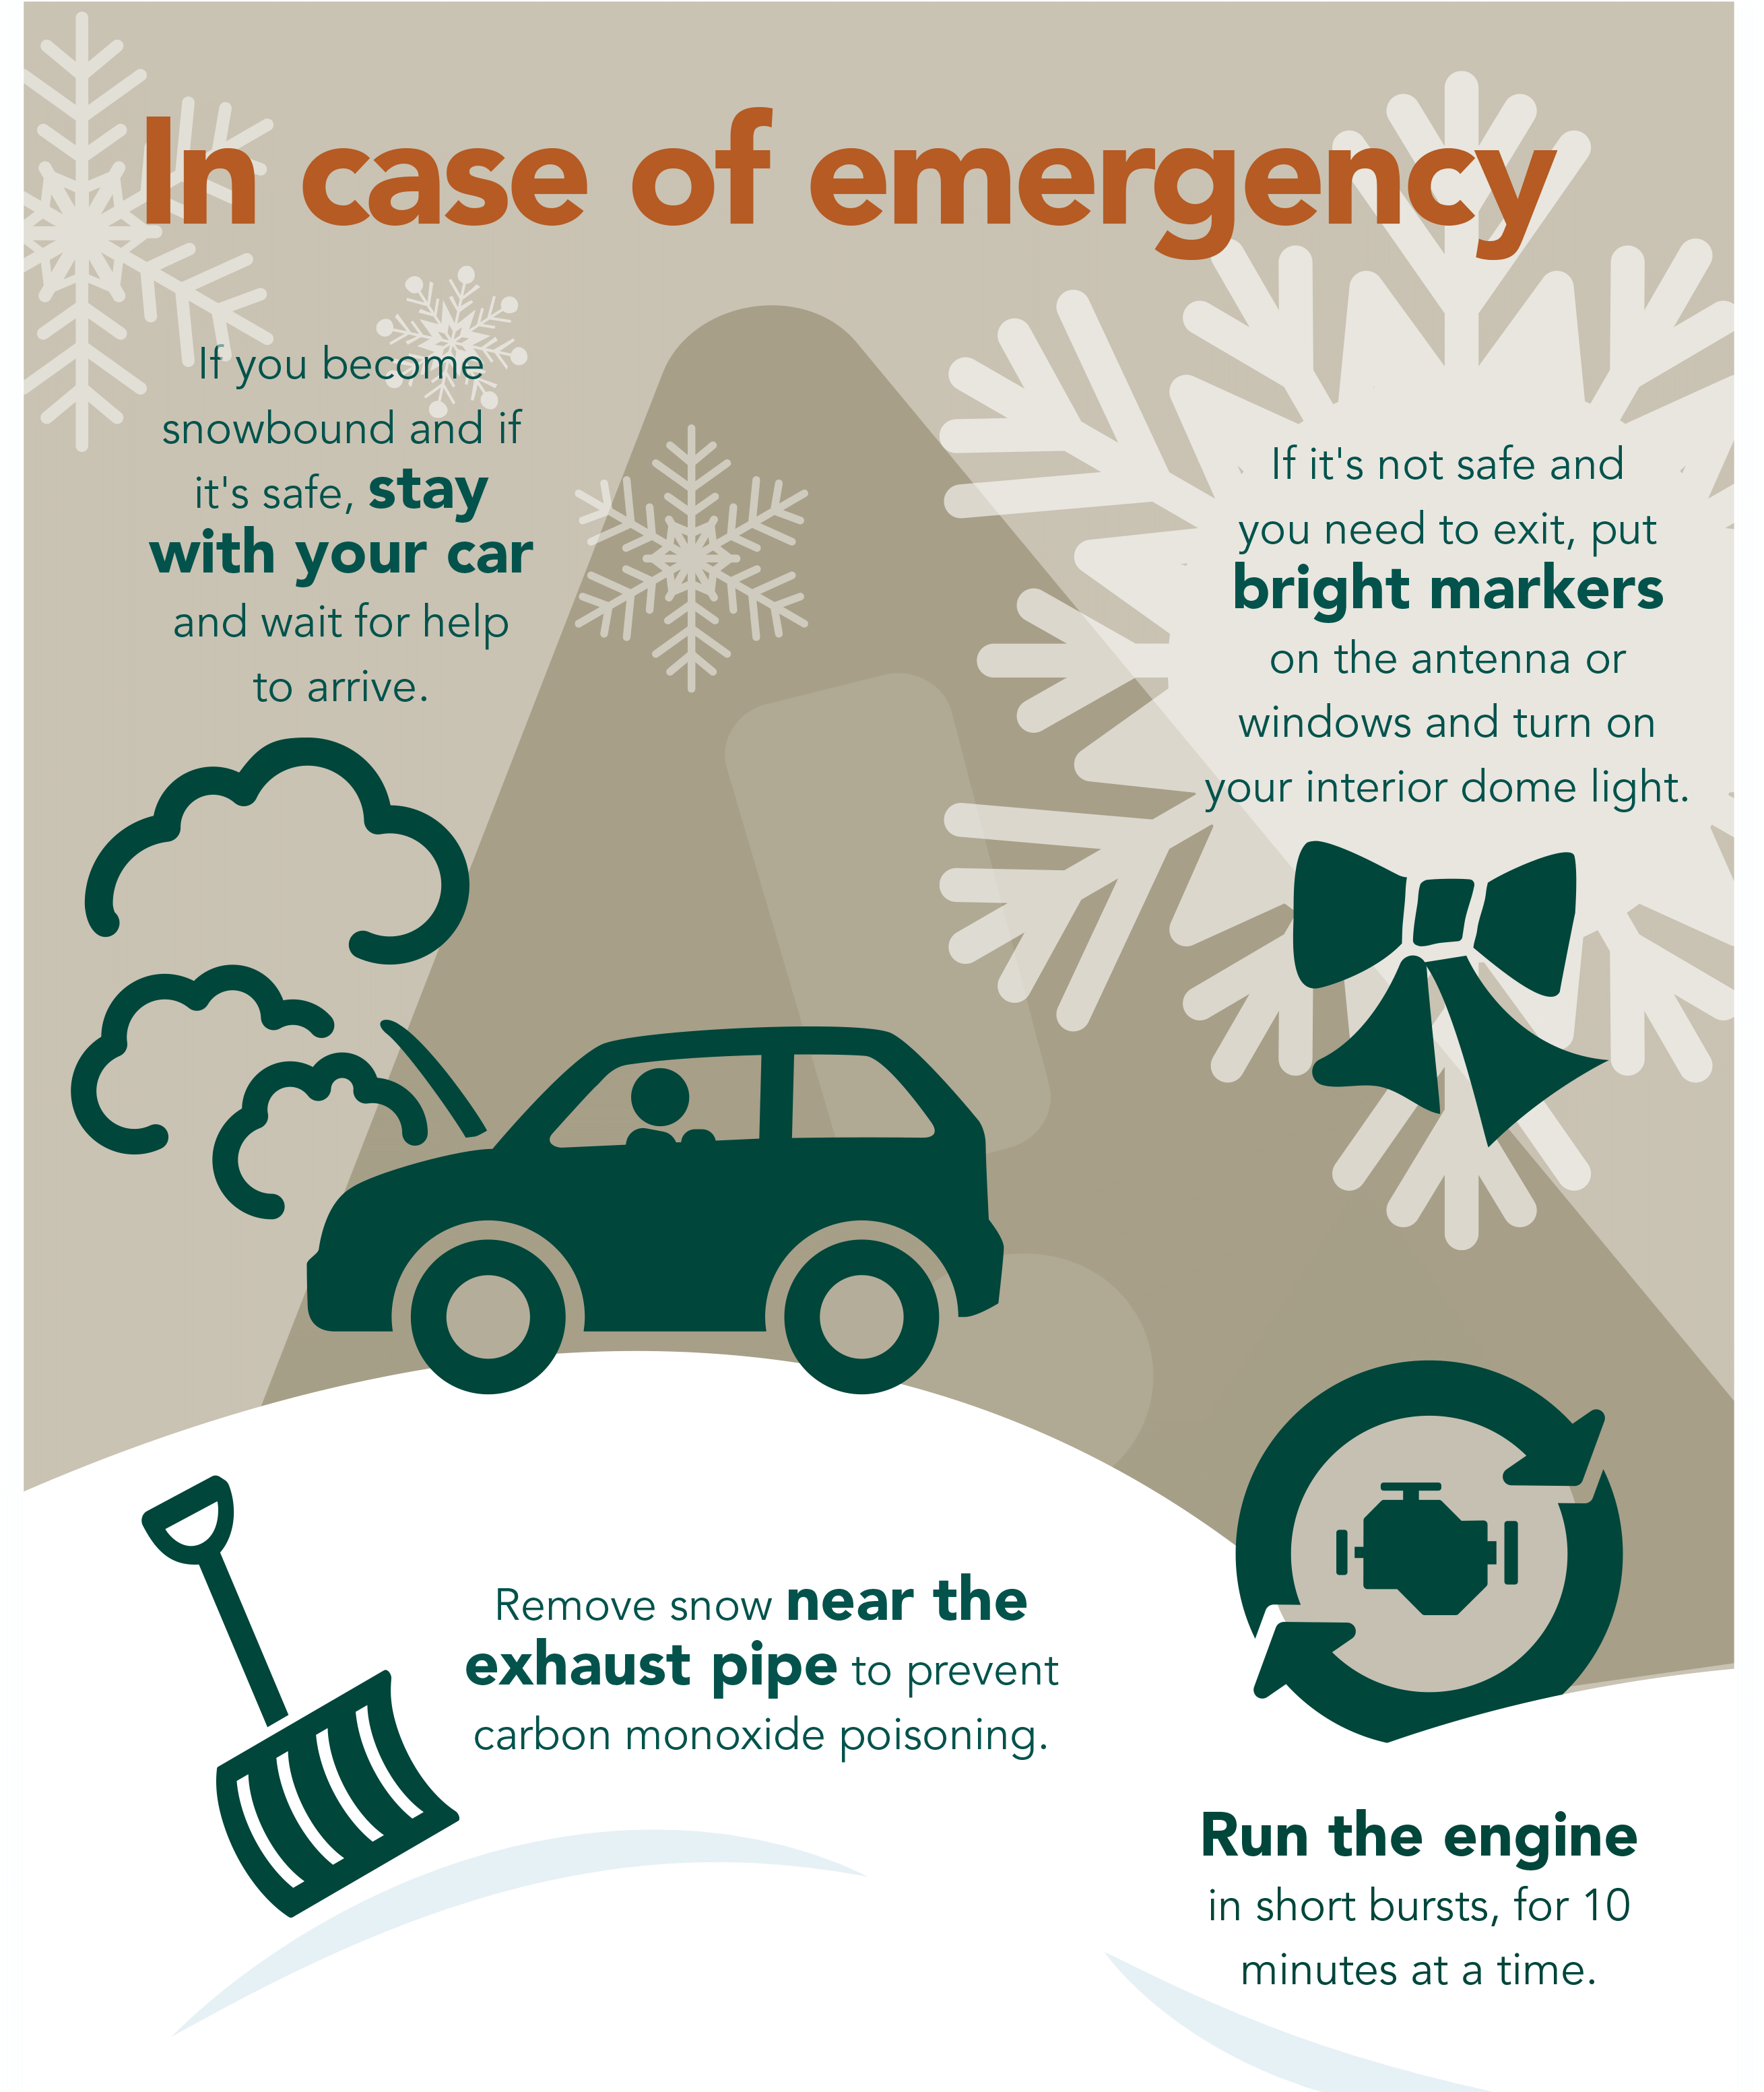 If snowbound: Stay with car: Remove snow near exhaust: Run engine in 10 min bursts: Put bright markers on car: Use dome light